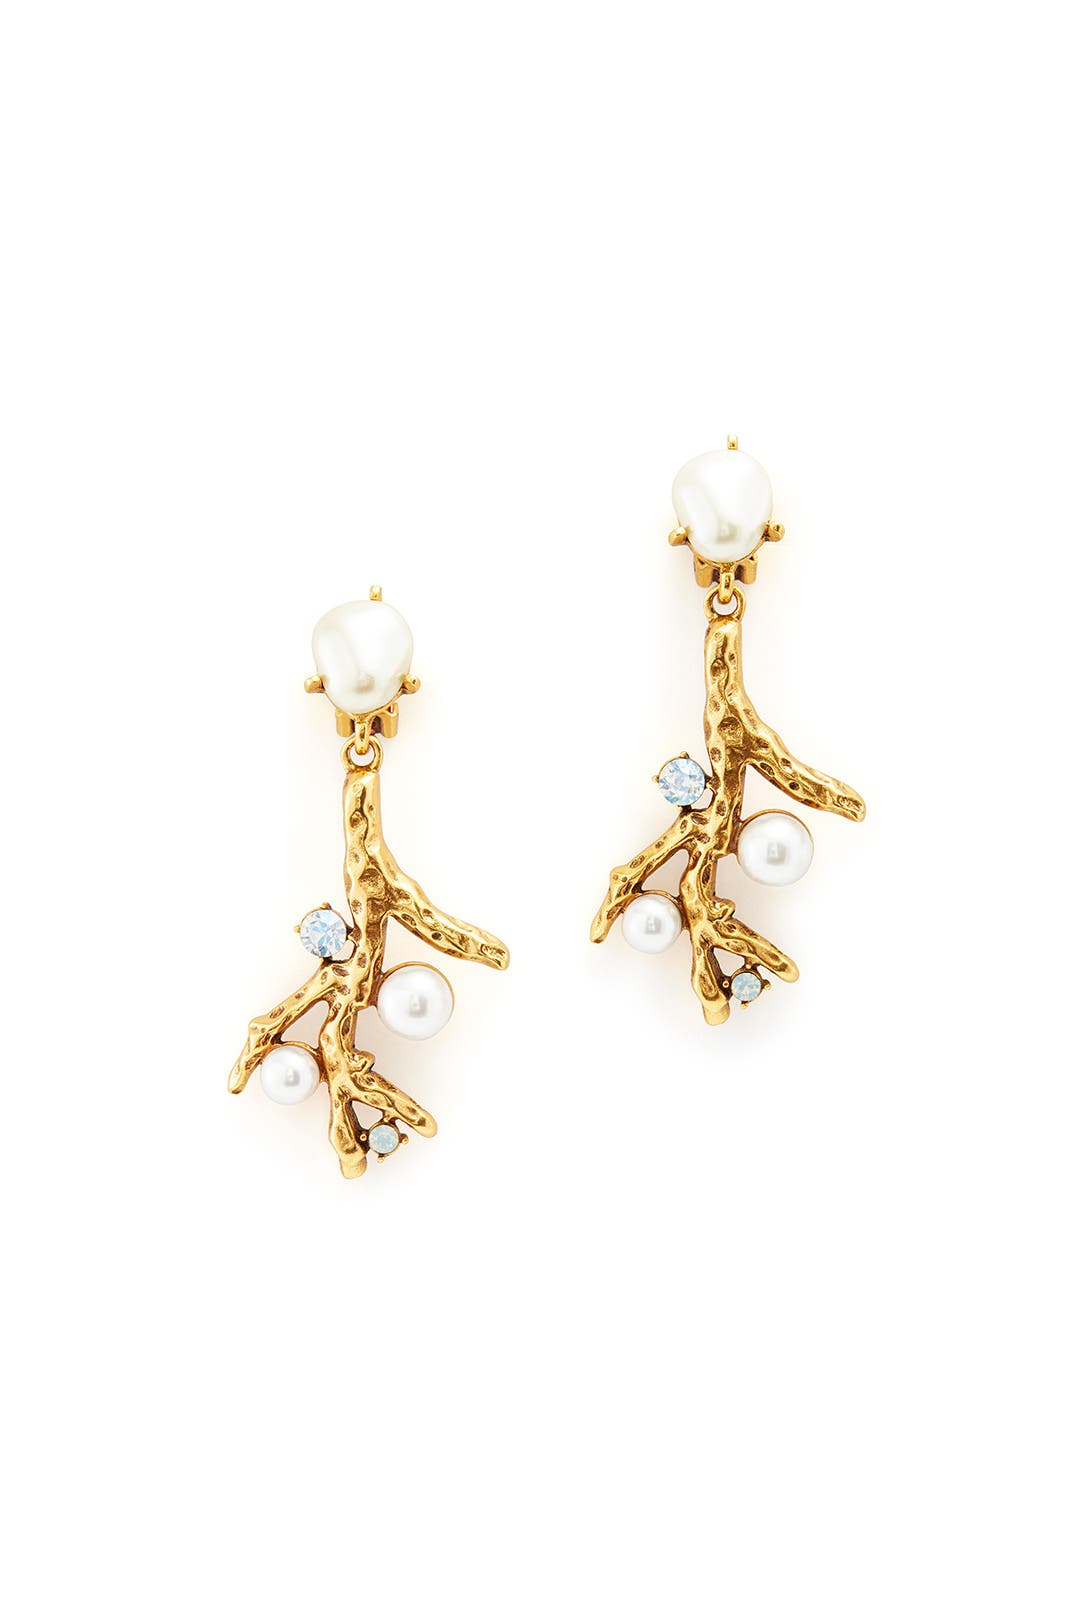 Great Barrier Drop Earrings by Oscar de la Renta